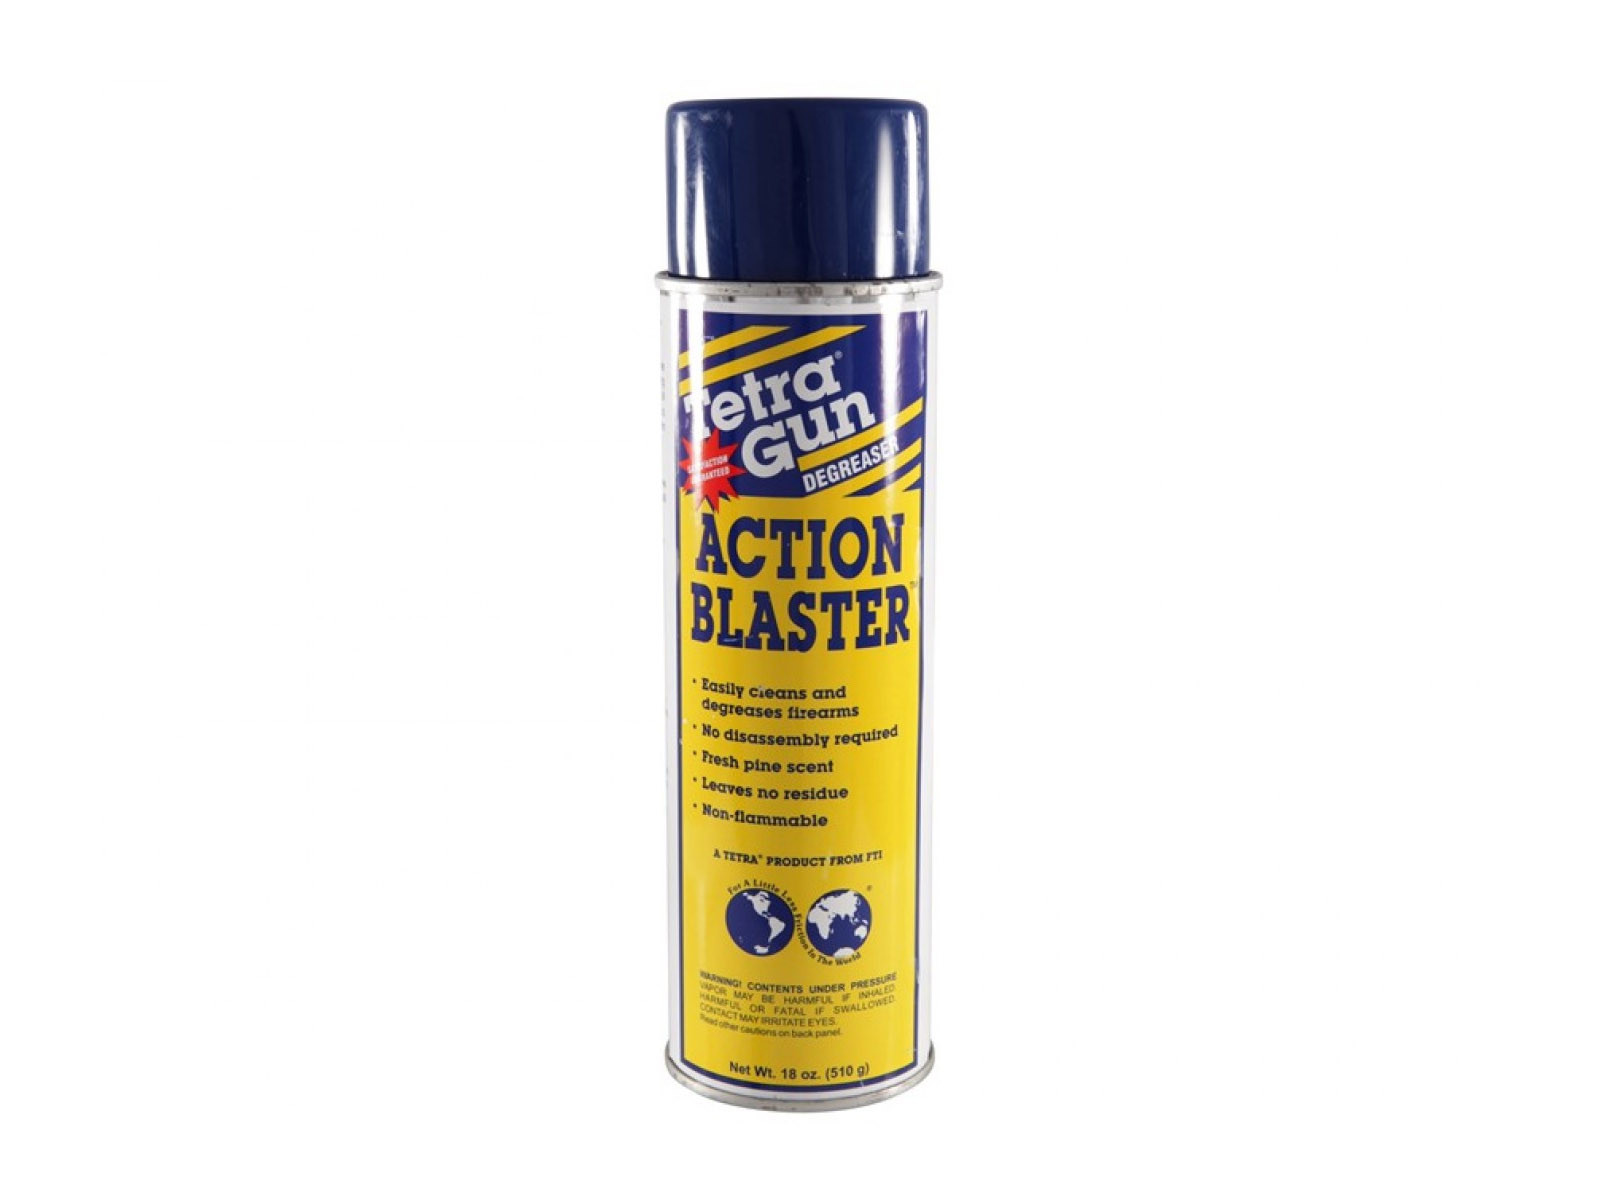 Tetra Gun Action Blaster Degreaser 18oz